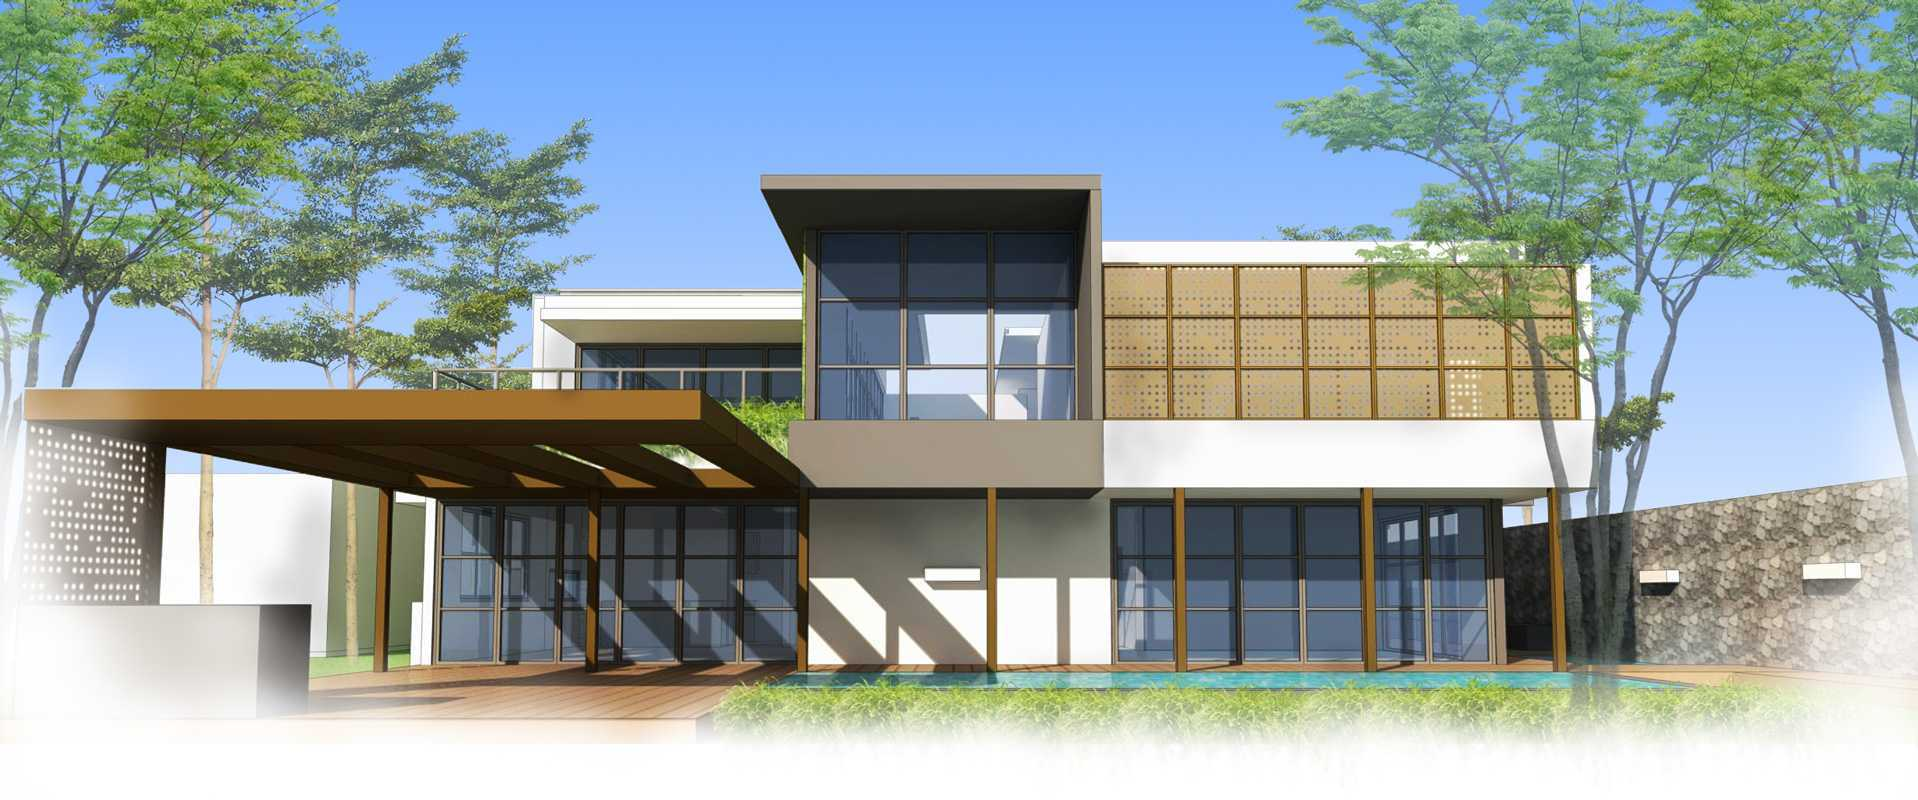 Rerupa Architecture Mr. Df House Kupang, Nusa Tenggara Timur, Indonesia Kupang, Nusa Tenggara Timur, Indonesia Front View   28927